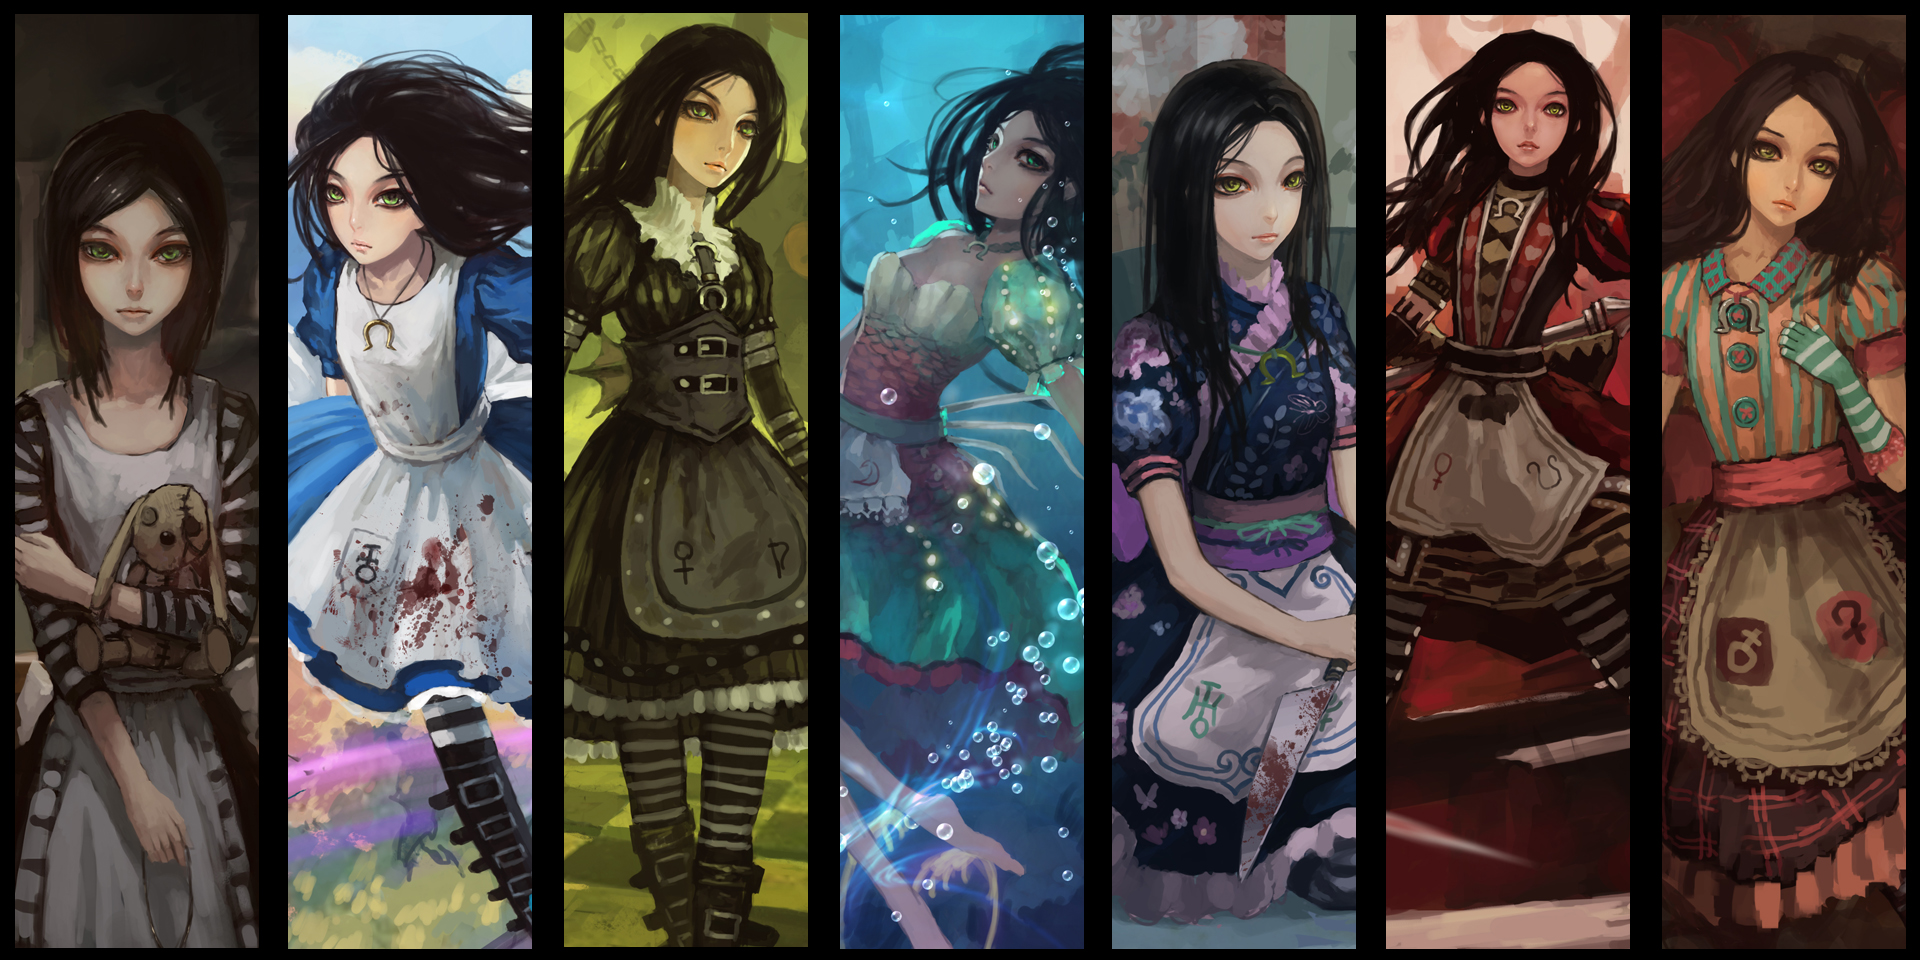 Alice (American McGee's) · download Alice (American McGee's) image